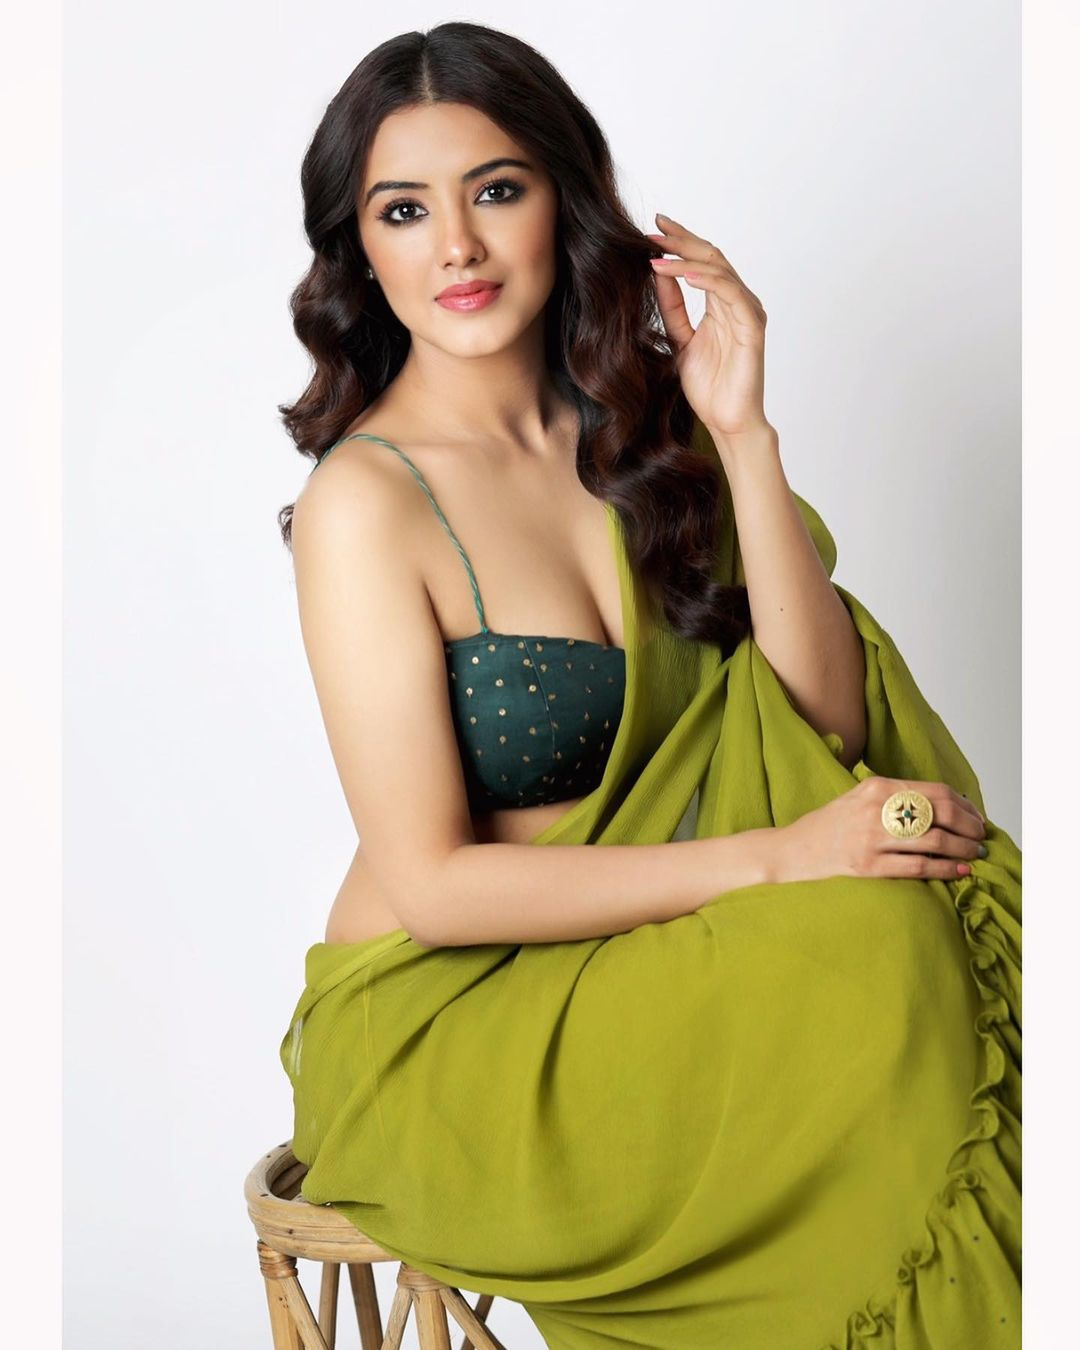 Malvika Sharma Facebook, Net Worth, Biography, Body Measurements, Movies, Pictures, Boyfriend, and Early Life